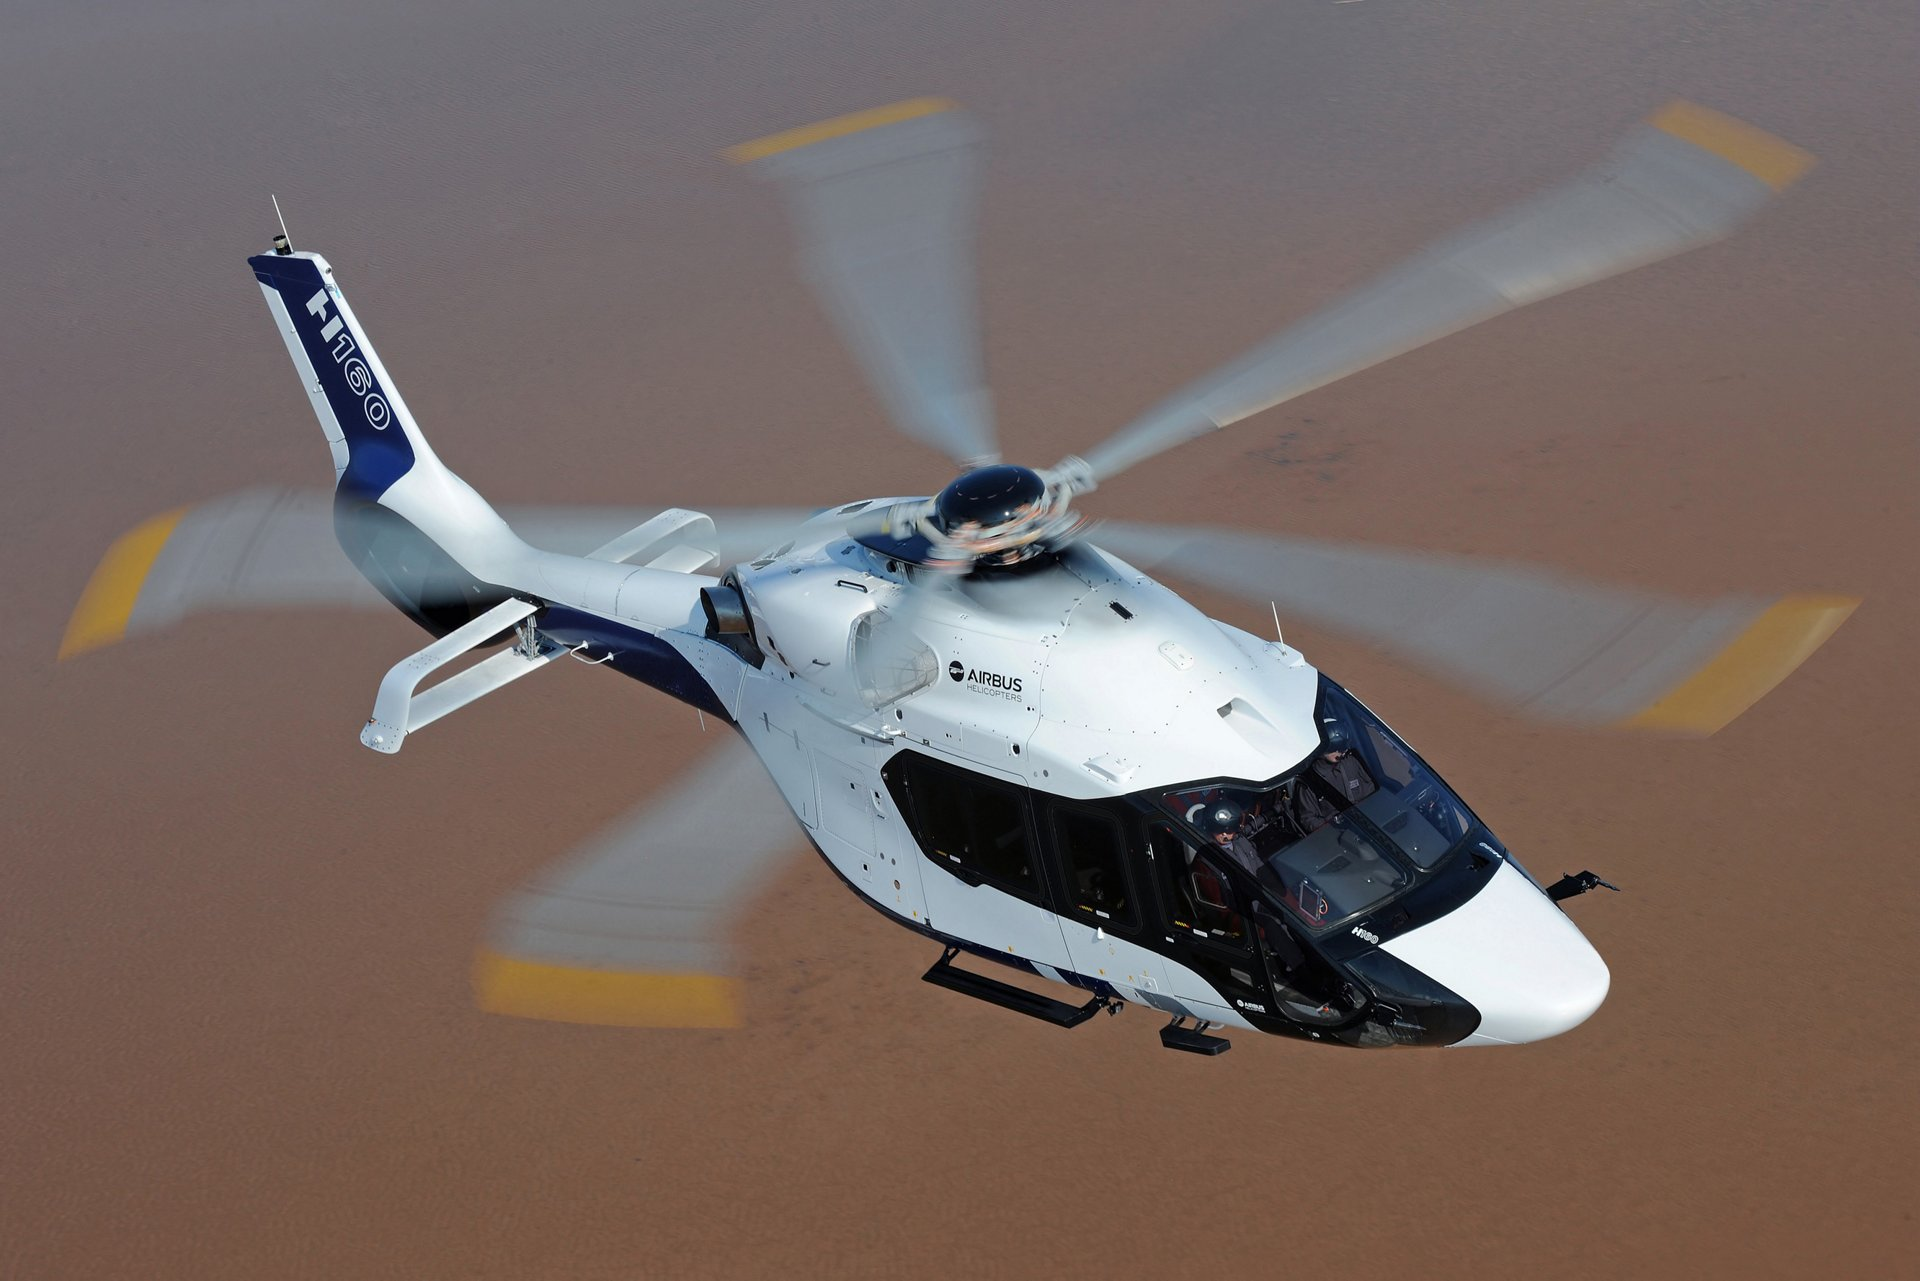 The H160 is Airbus Helicopters' innovative medium twin-engine helicopter designed to create added value for customers in terms of performance, economic competitiveness, safety and comfort.